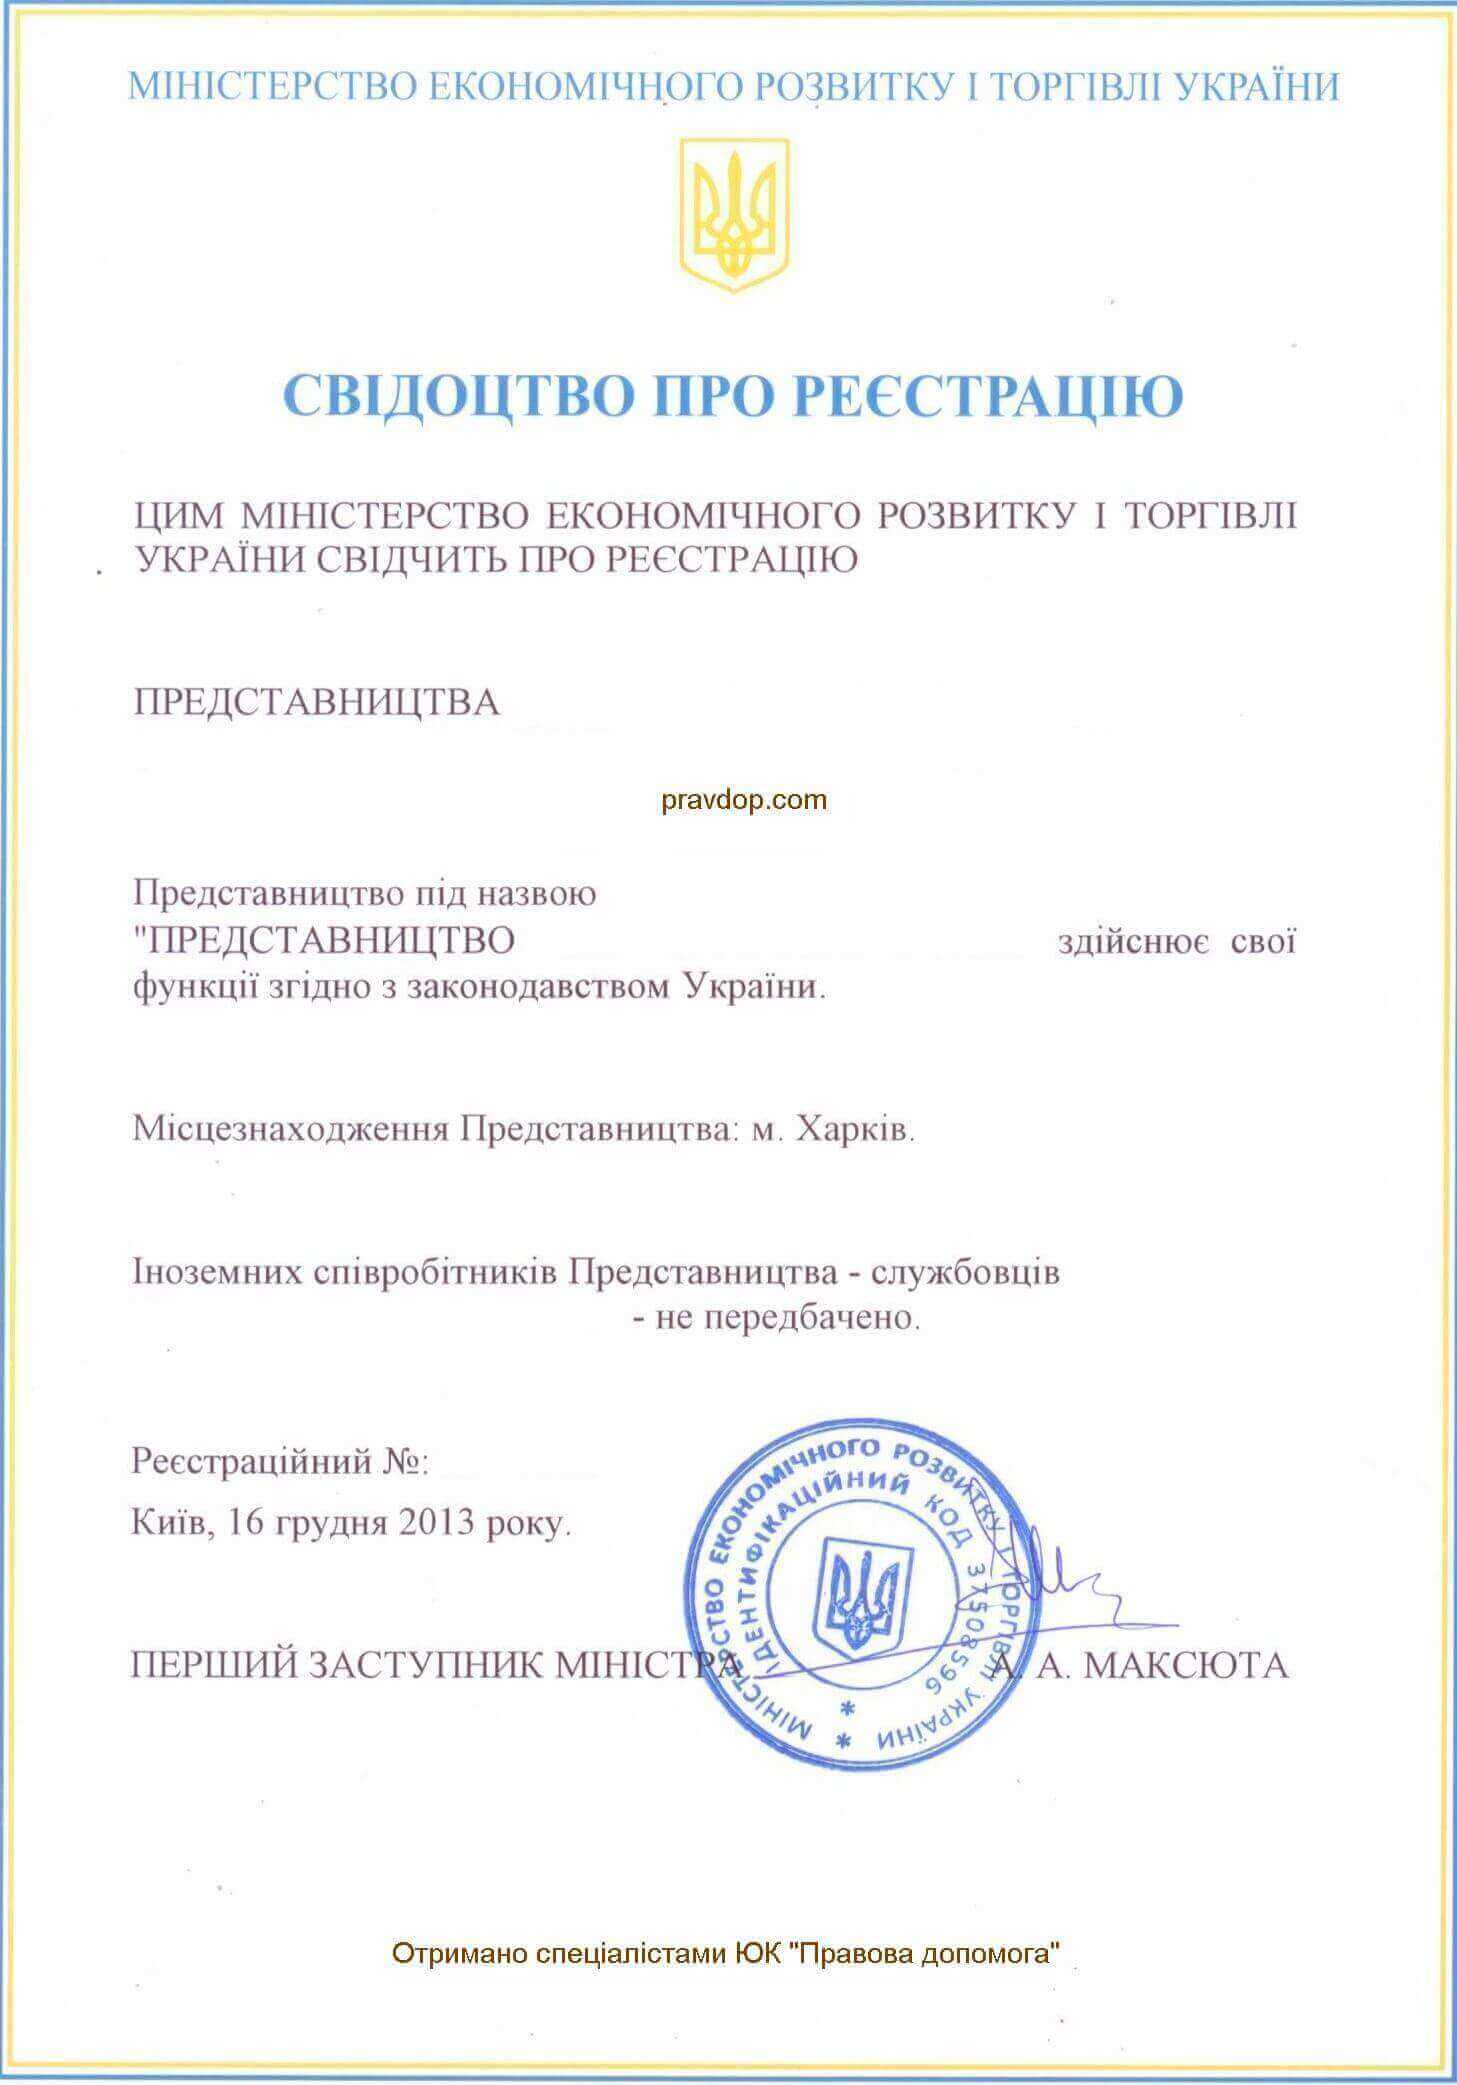 Registration of representative office of foreign company in Ukraine